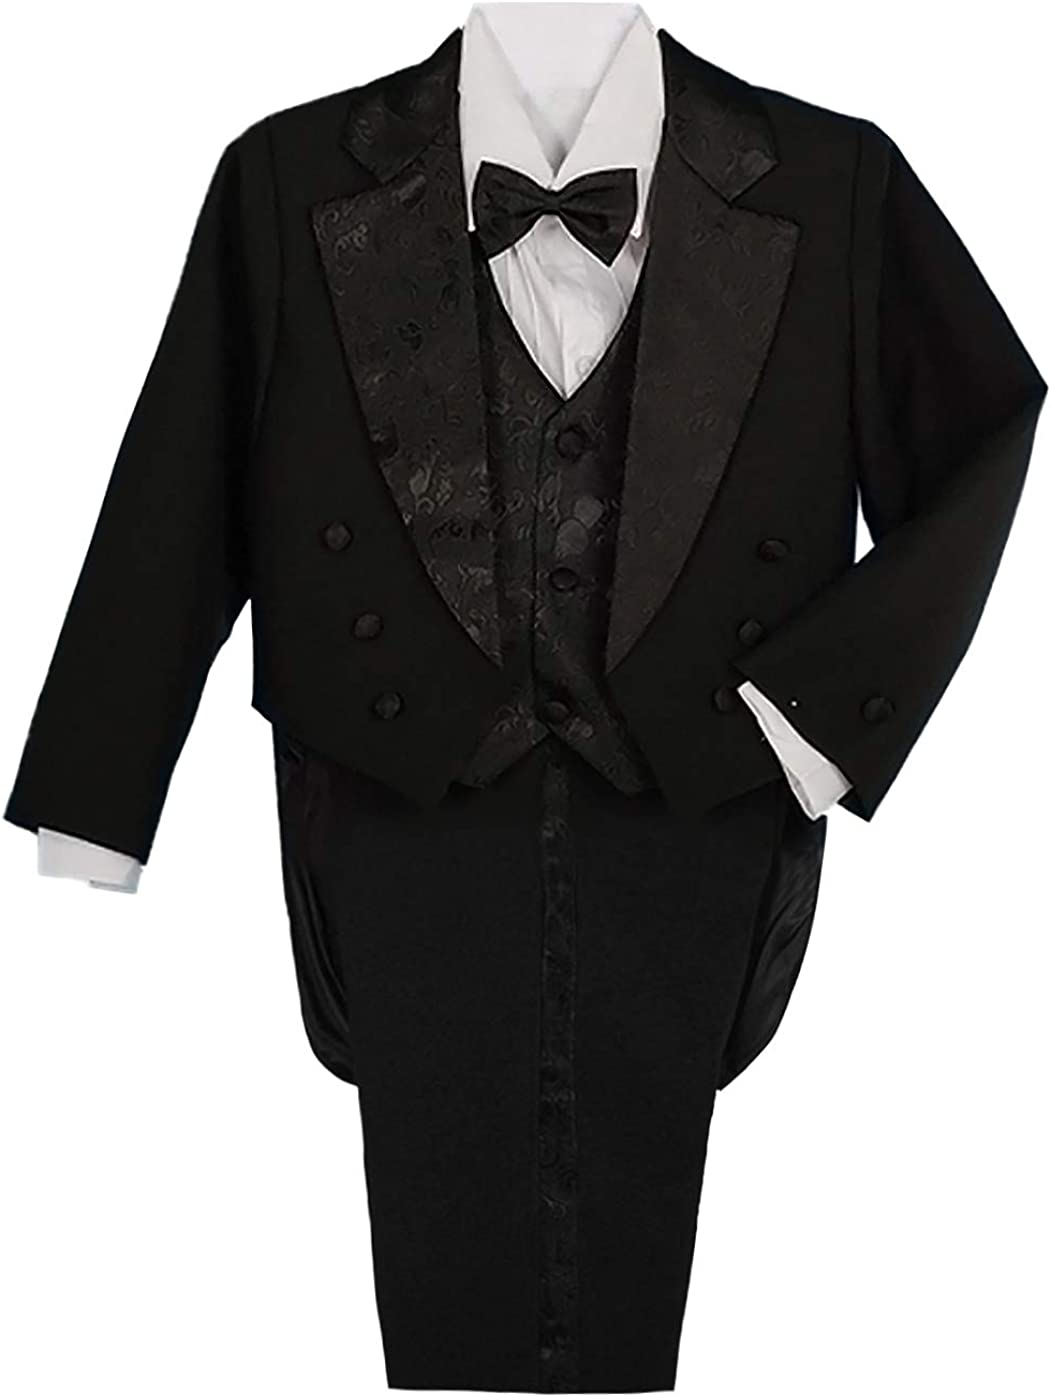 Lito Angels Boys' Charlotte Mall Classic Tuxedo Wedding Tail Suits Popular standard Formal with